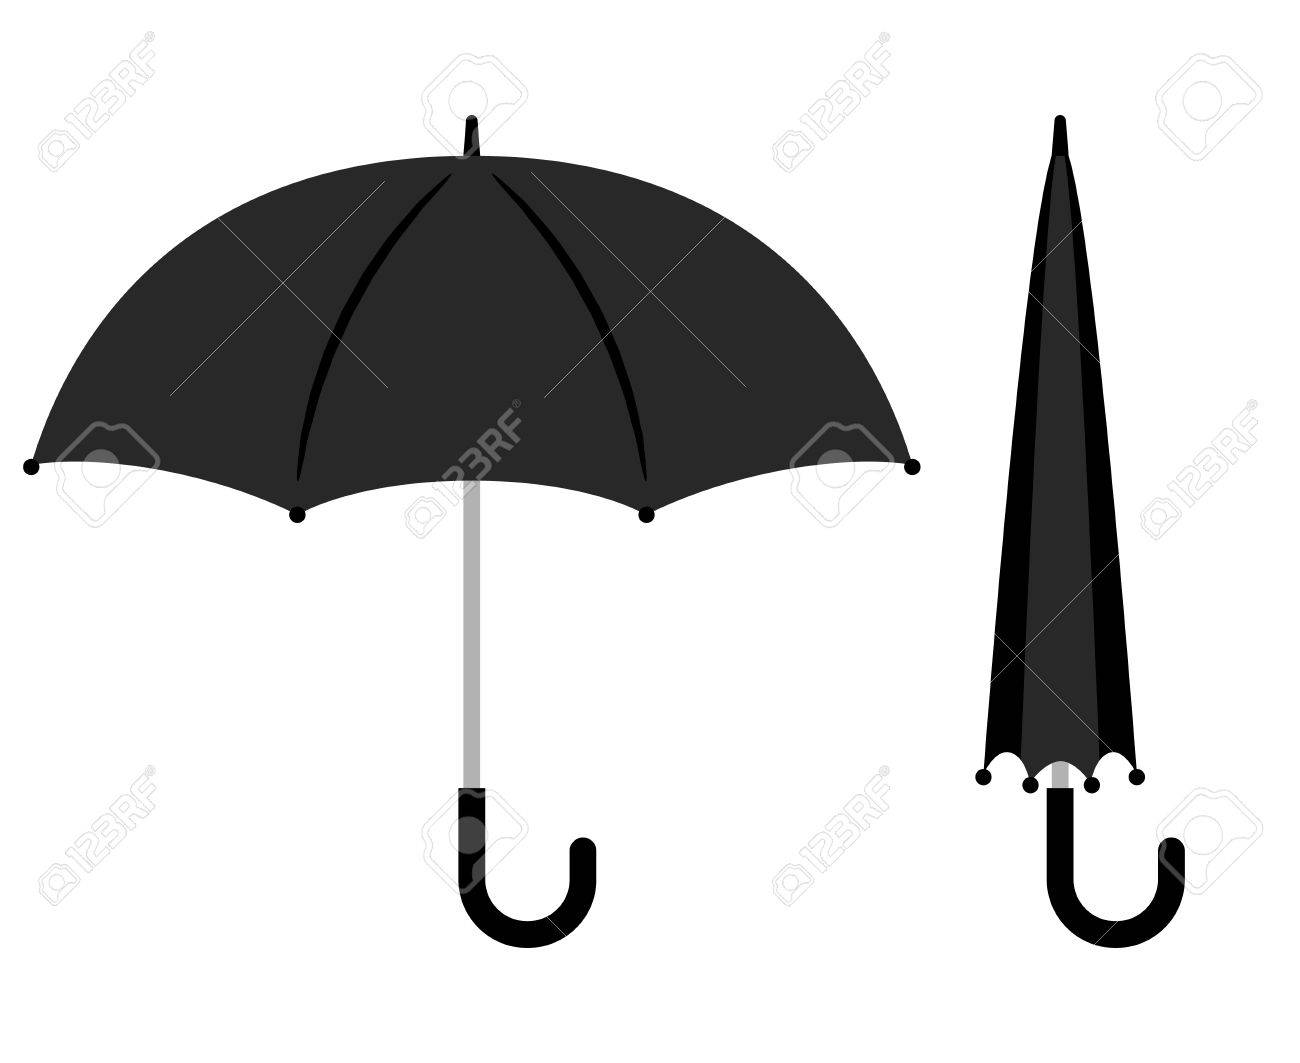 a181fc91c Open and folded black umbrella icons on white background. Vector  illustration Stock Vector - 69295208